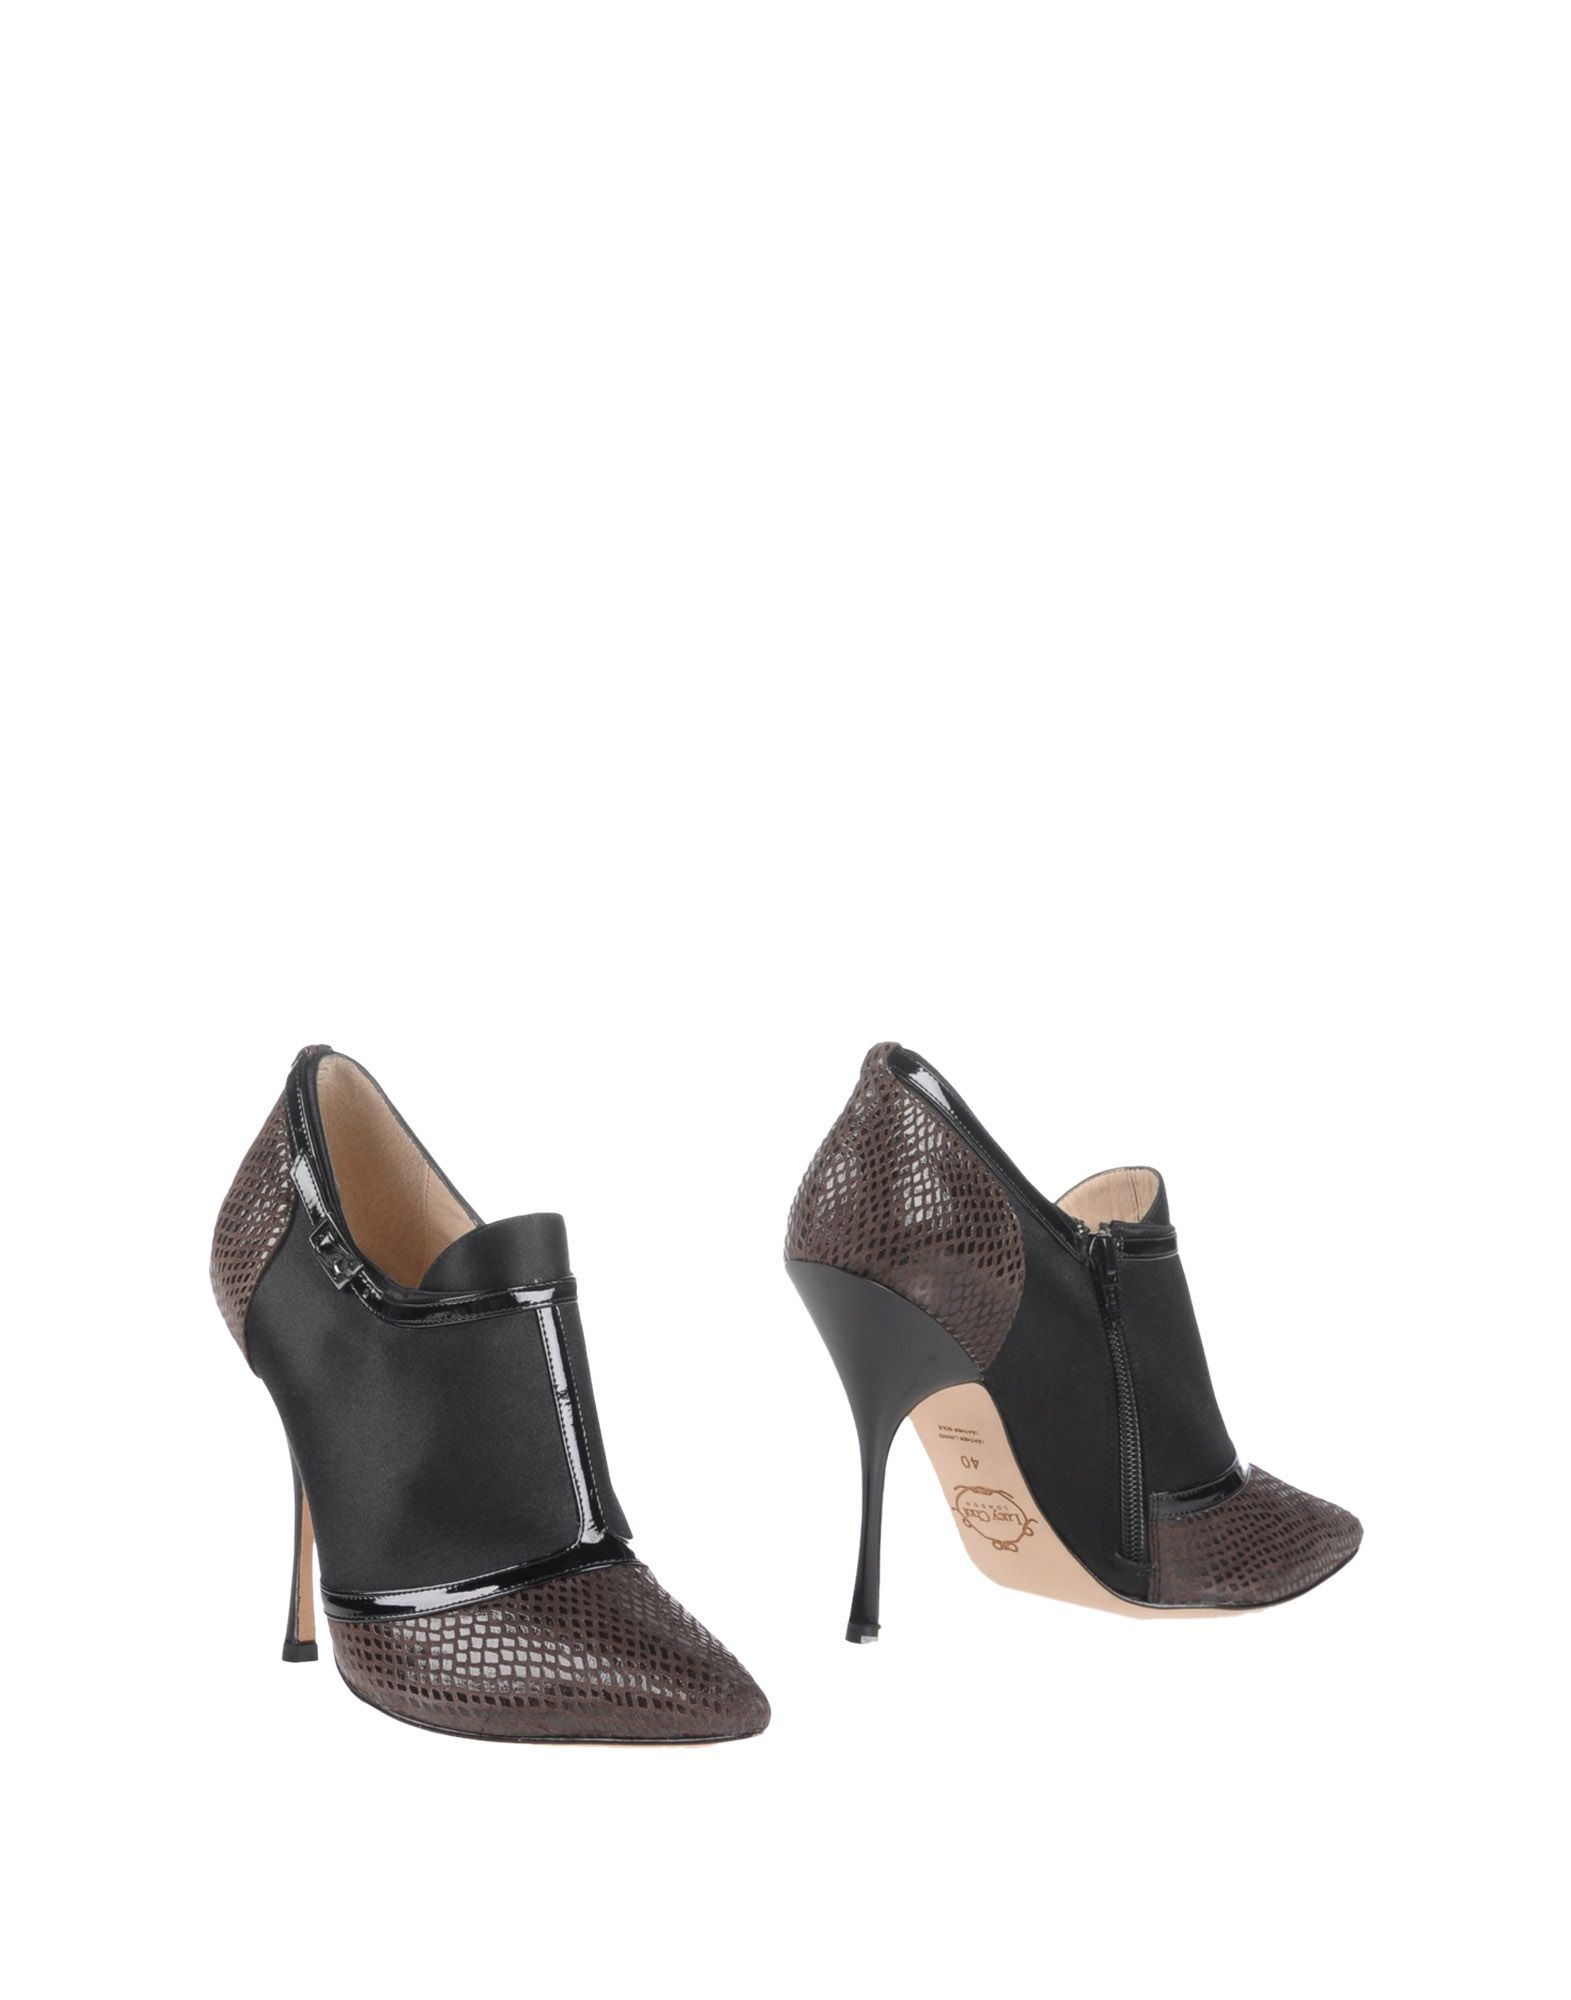 Bottine Lucy Choi London Femme - Bottines Lucy Choi London sur